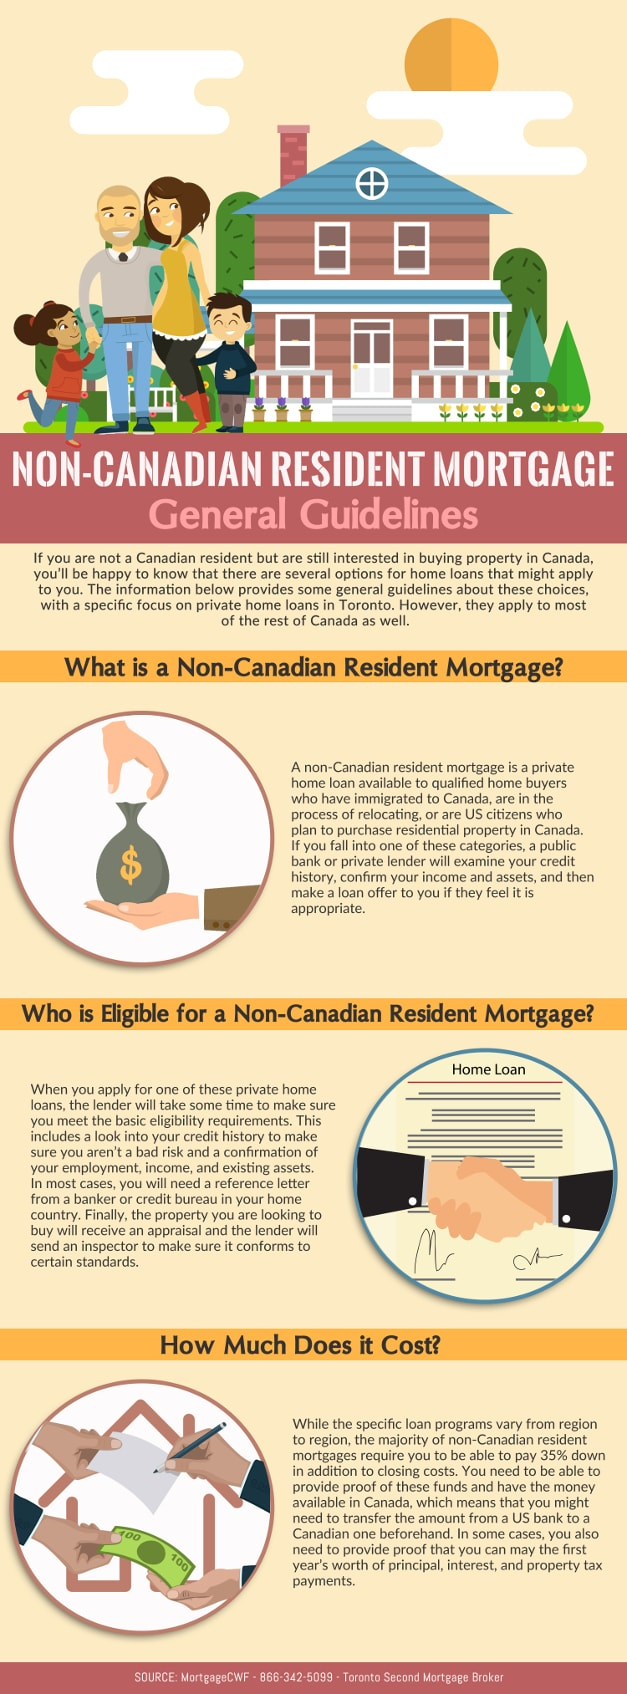 Non-Canadian Resident Mortgage: General Guidelines